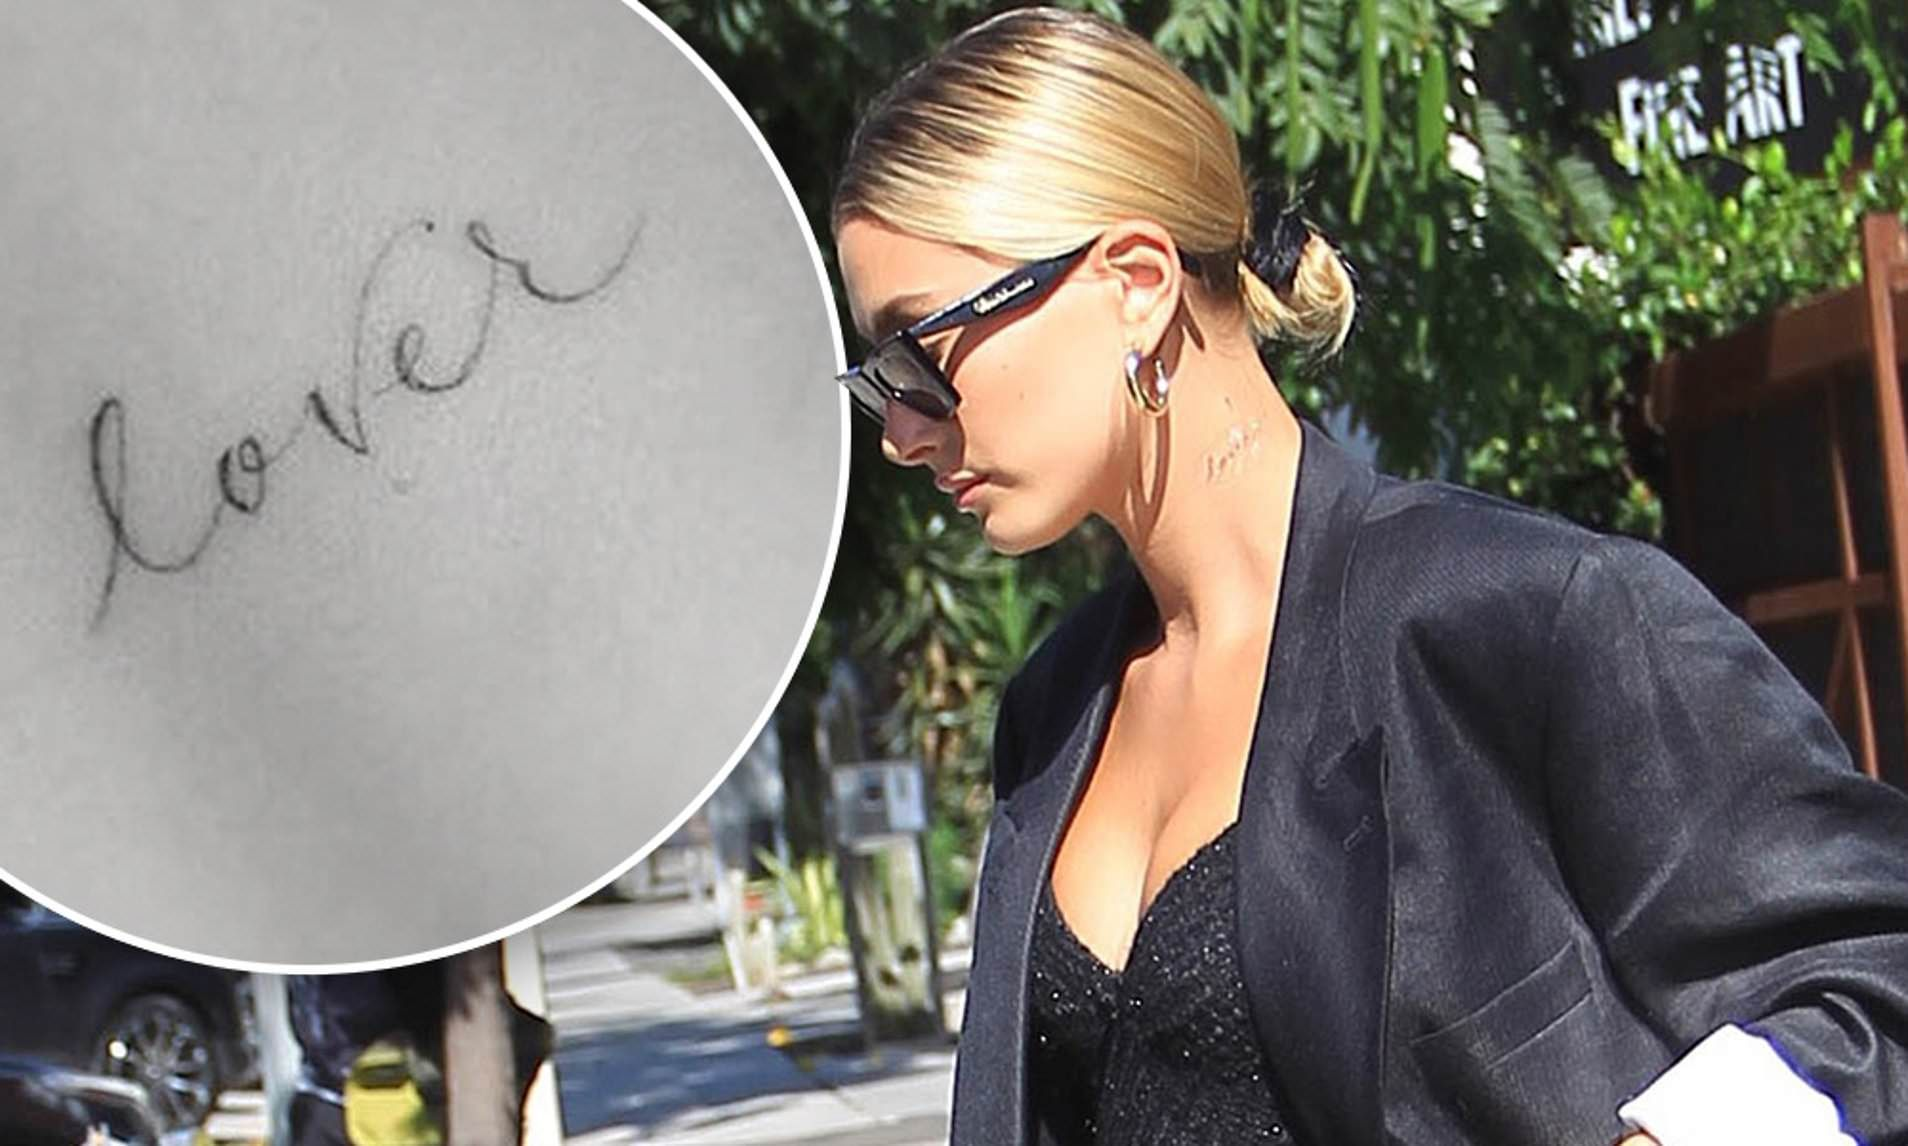 Hailey Baldwin debuts new 'Lover' tattoo on her neck ahead of first anniversary to